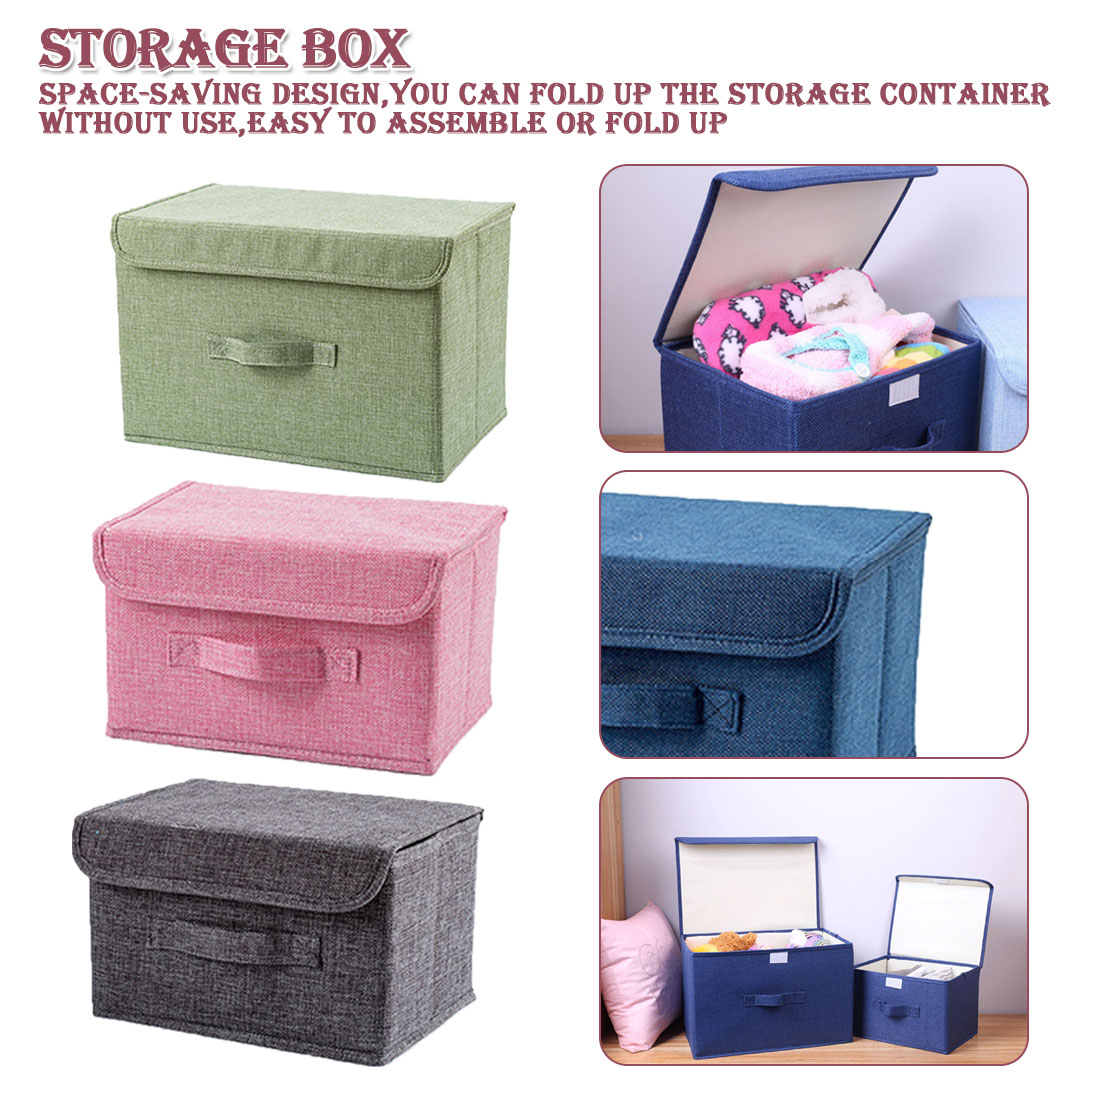 Large Cotton linen Fabric Folding Storage Box Foldable Bins Toys Organizer With Lids And Handles Storage Basket Laundry Basket